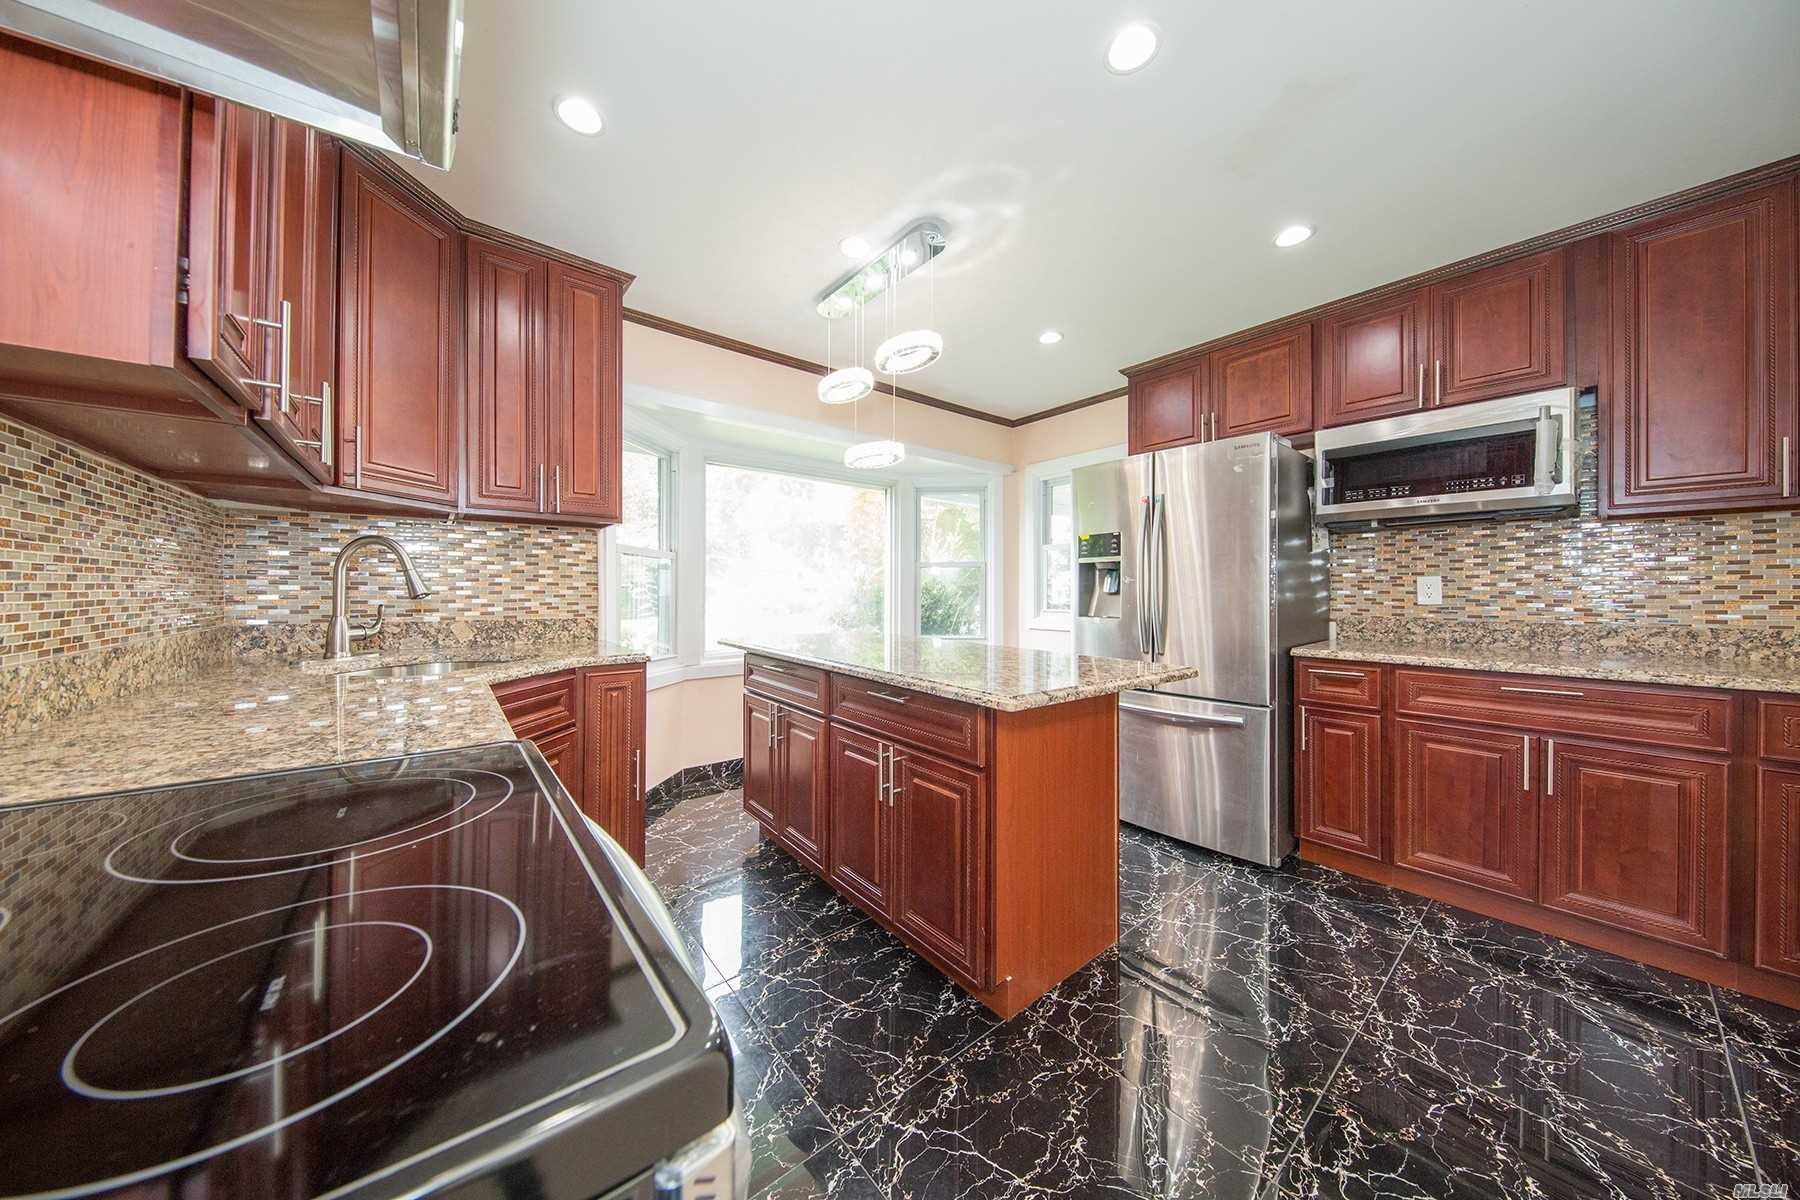 totally and recently updated house in the prime location of levittown, five bedrooms and two updated bathrooms, nicely updated kitchen with granite and samsung ss appliances.new central ac, extra bedroom in the garage.almost new roof.house can be used as mother daughter with proper permit.